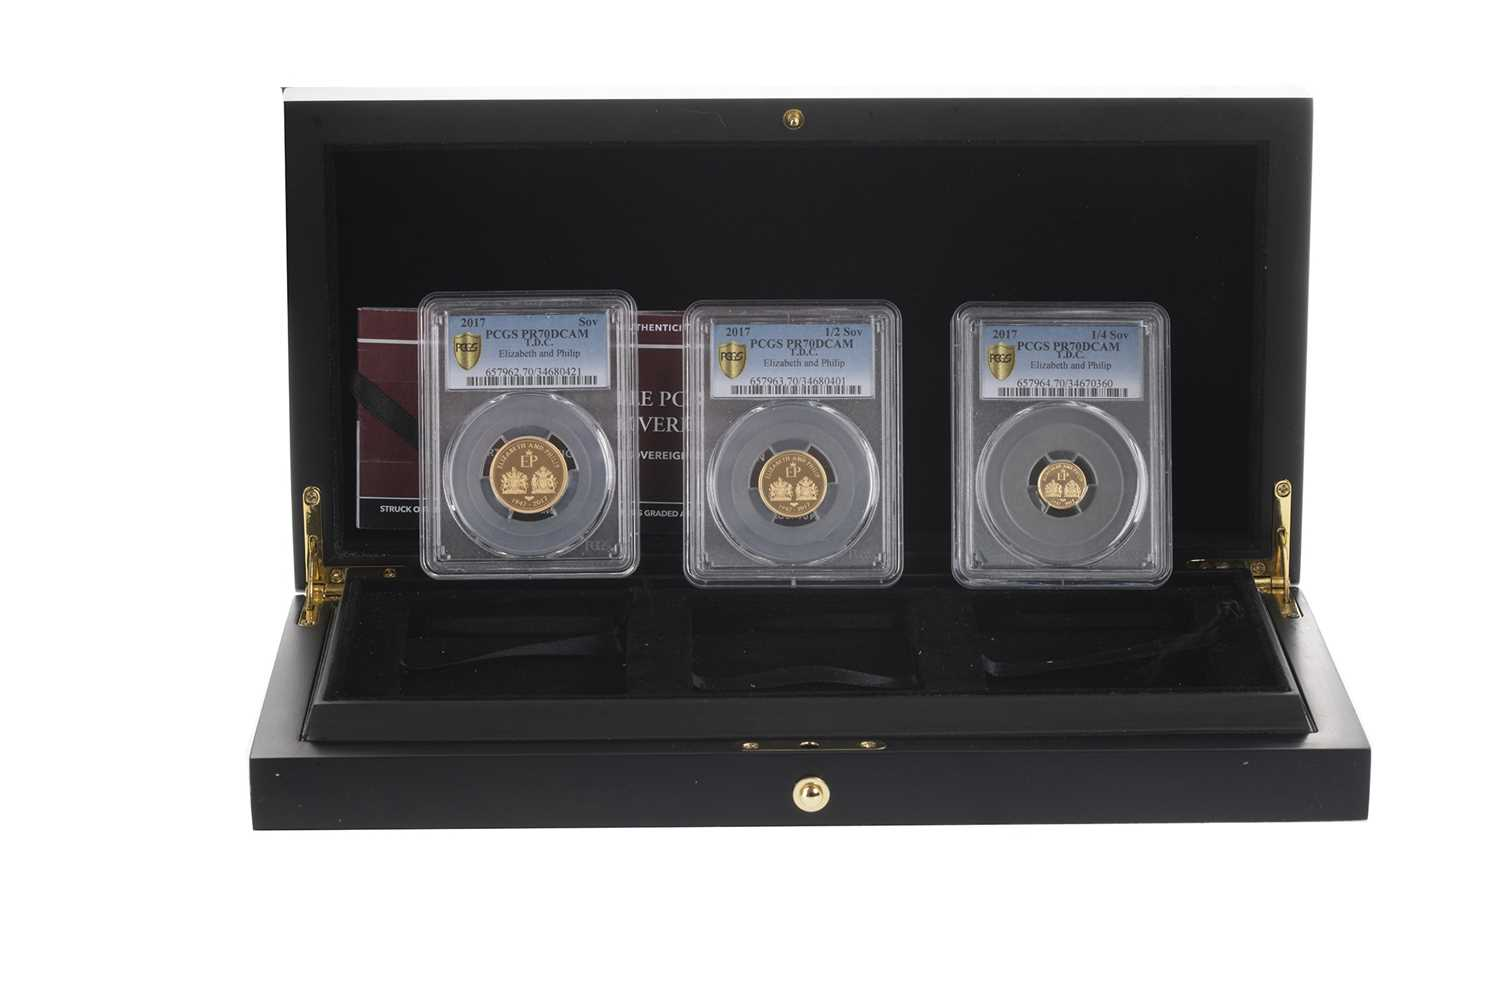 Lot 17-THE 2017 DOUBLE PORTRAIT DELUXE GOLD SOVEREIGN SET